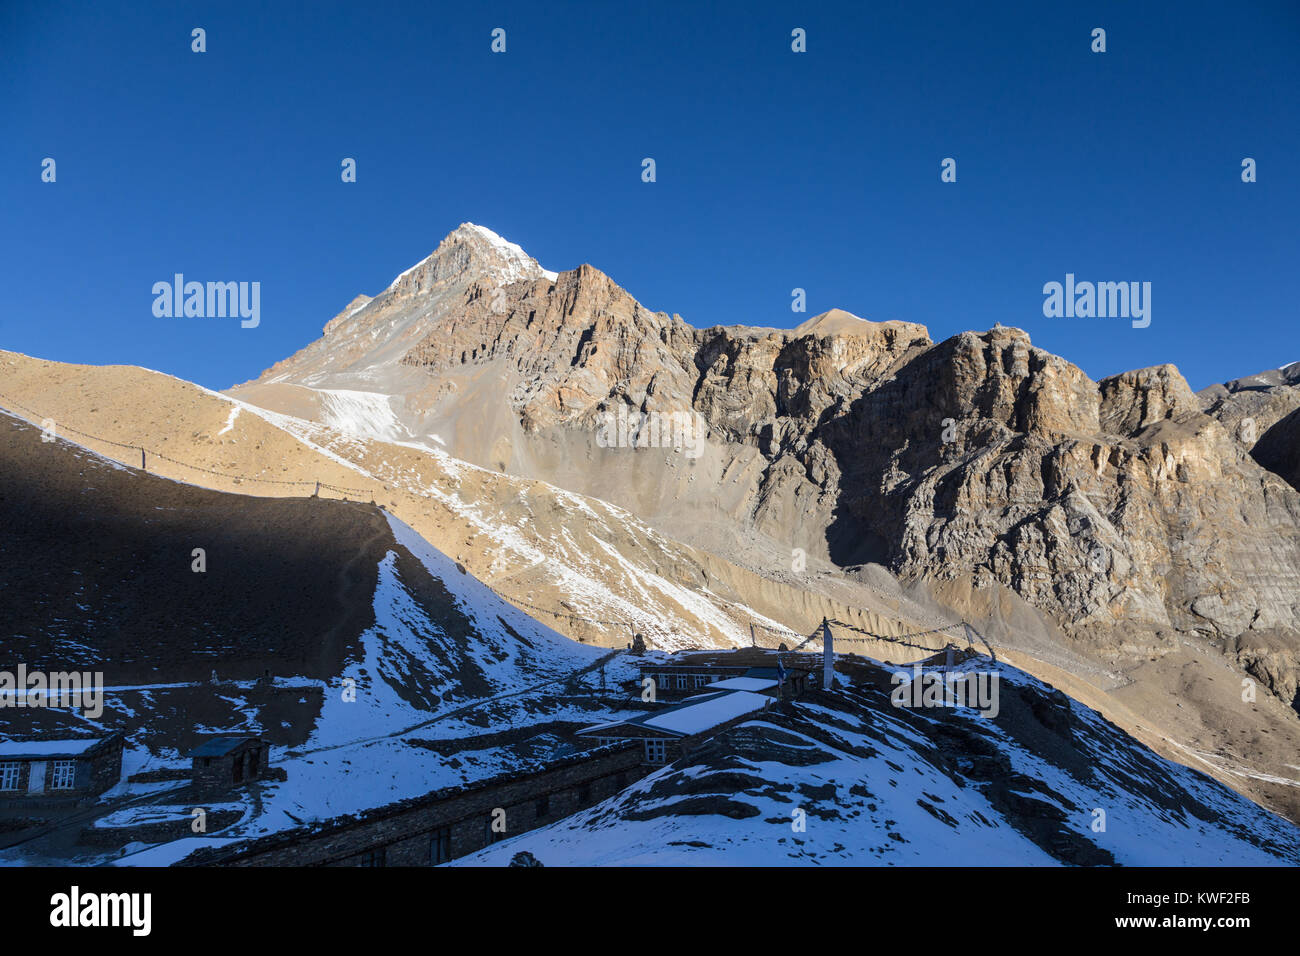 Circuito Alba : Thorung la pass immagini & thorung la pass fotos stock alamy